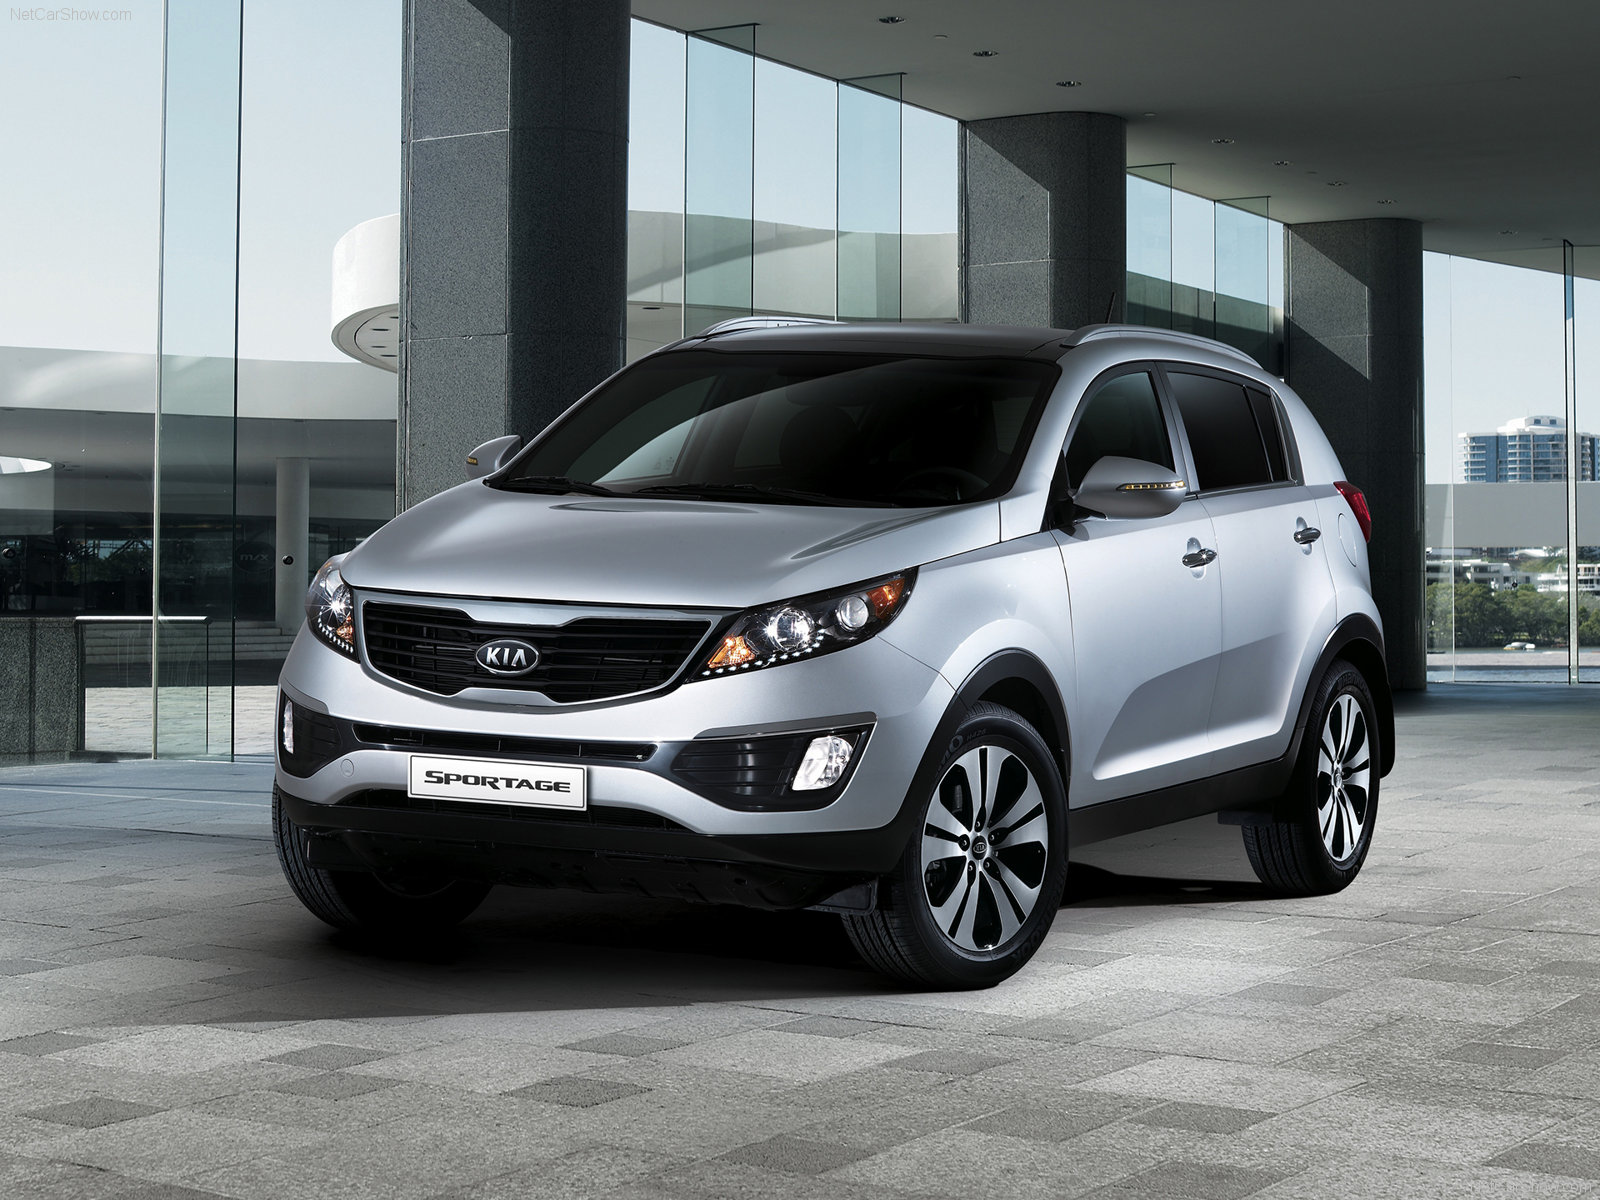 new 2010 kia sportage features and specifications. Black Bedroom Furniture Sets. Home Design Ideas